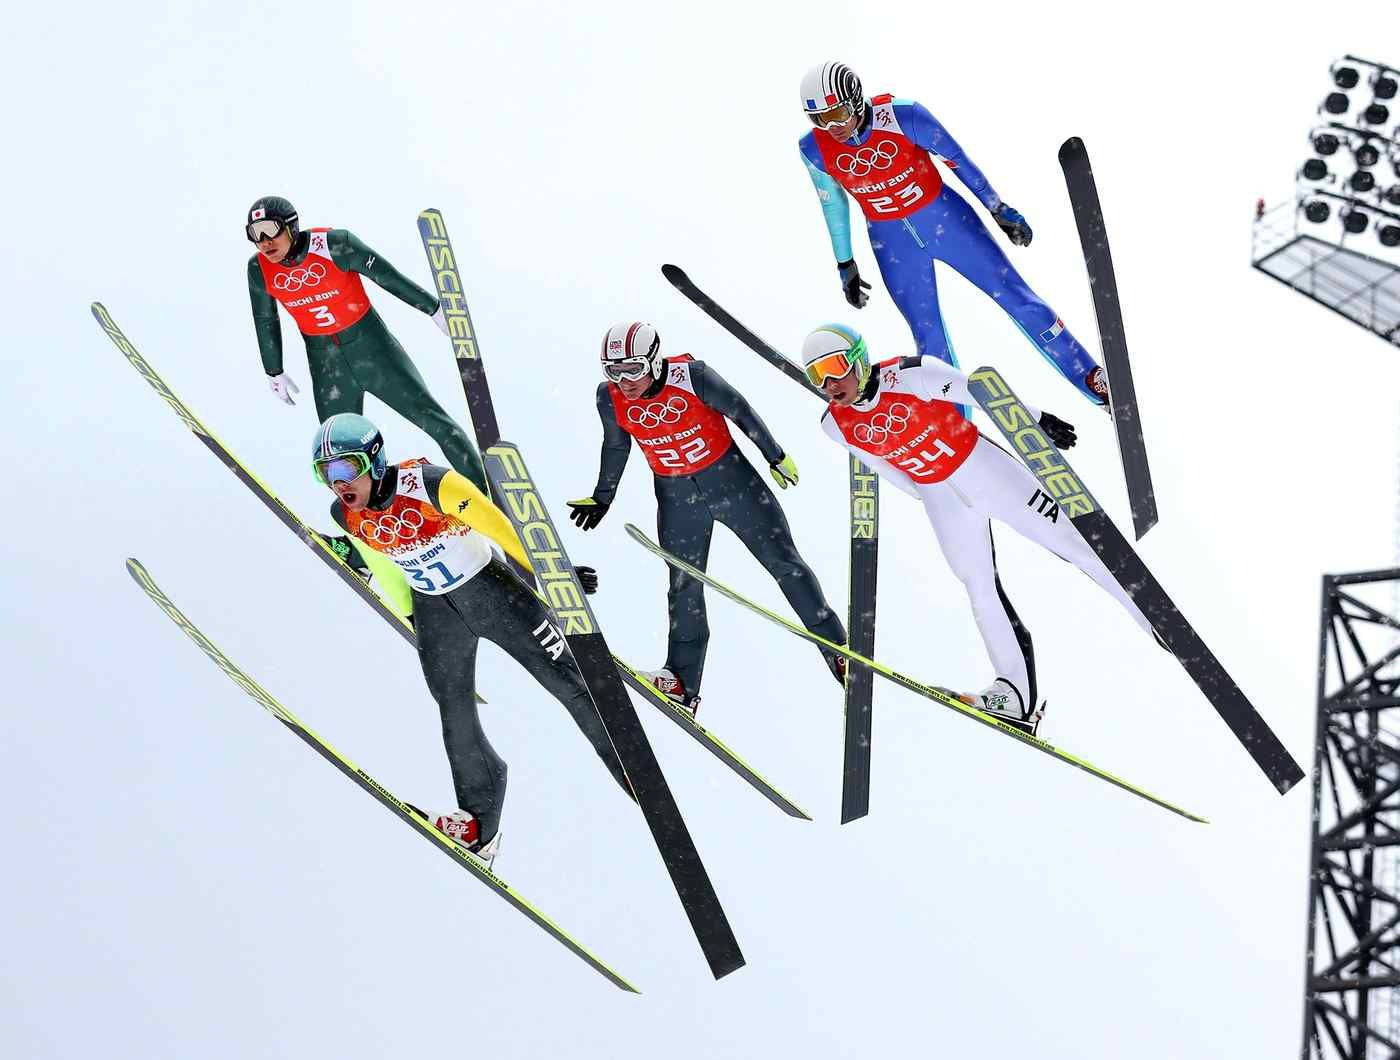 Olympic Officials To Have Ski Jumpers Go One At A Time From Now On